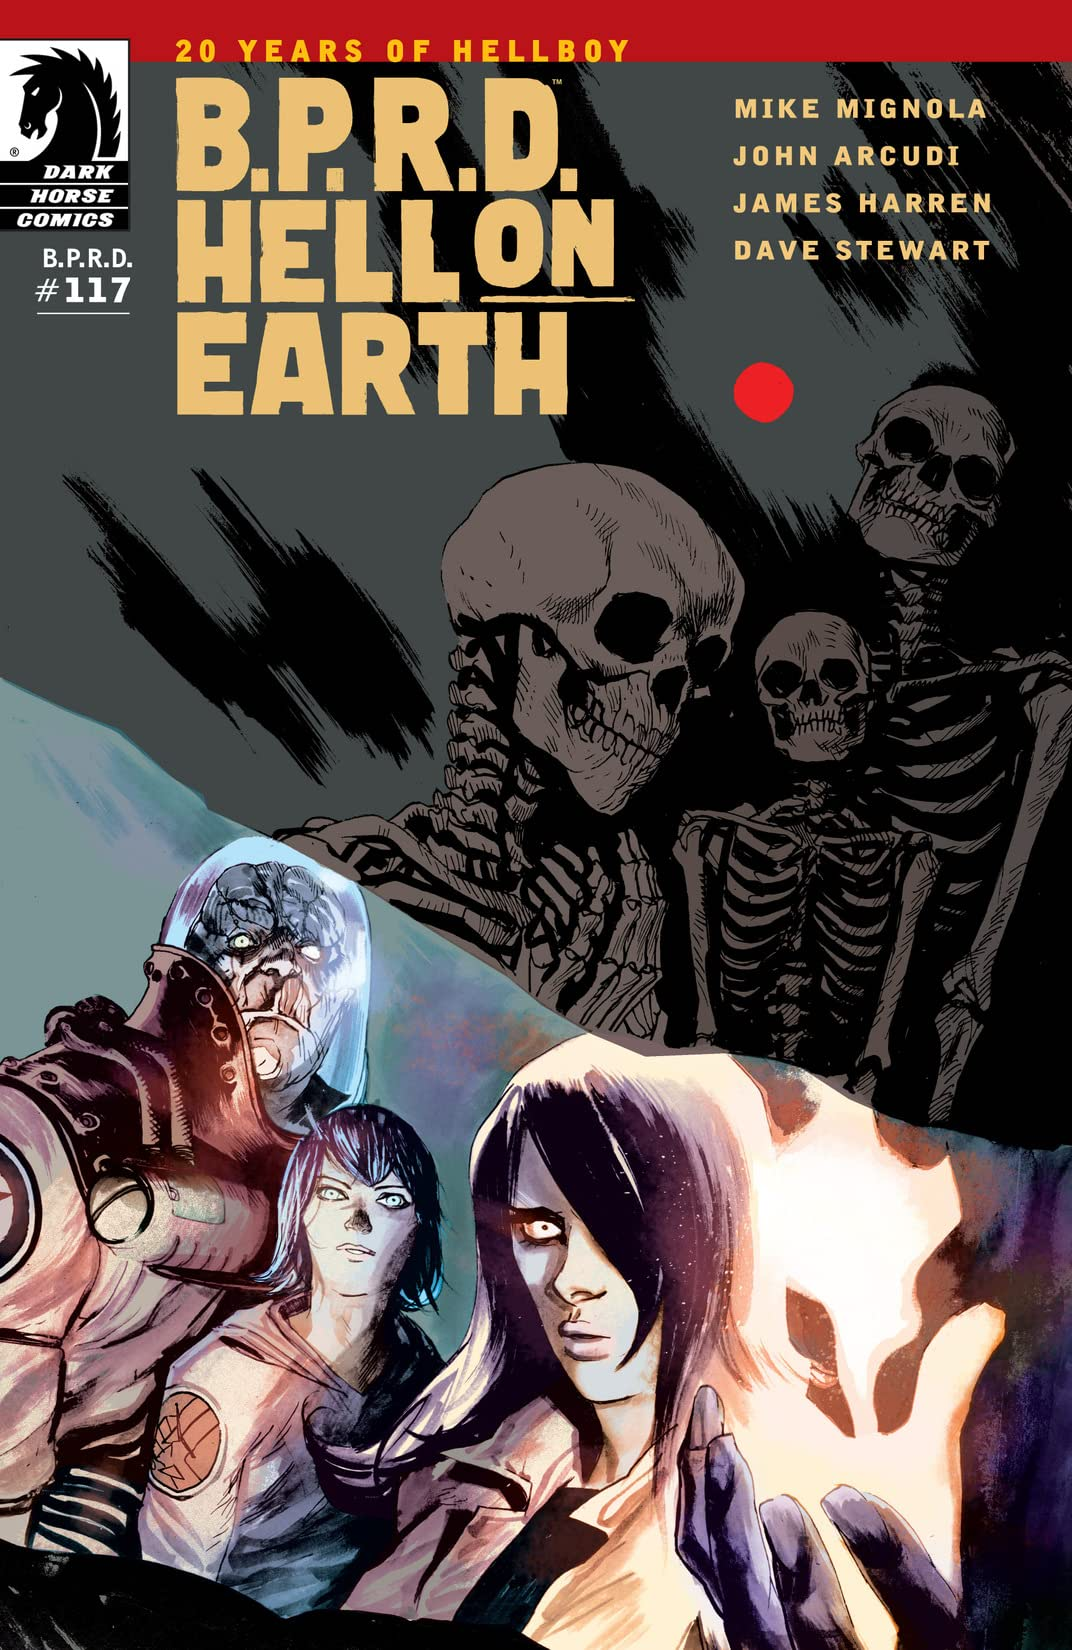 B.P.R.D.: Hell on Earth #117